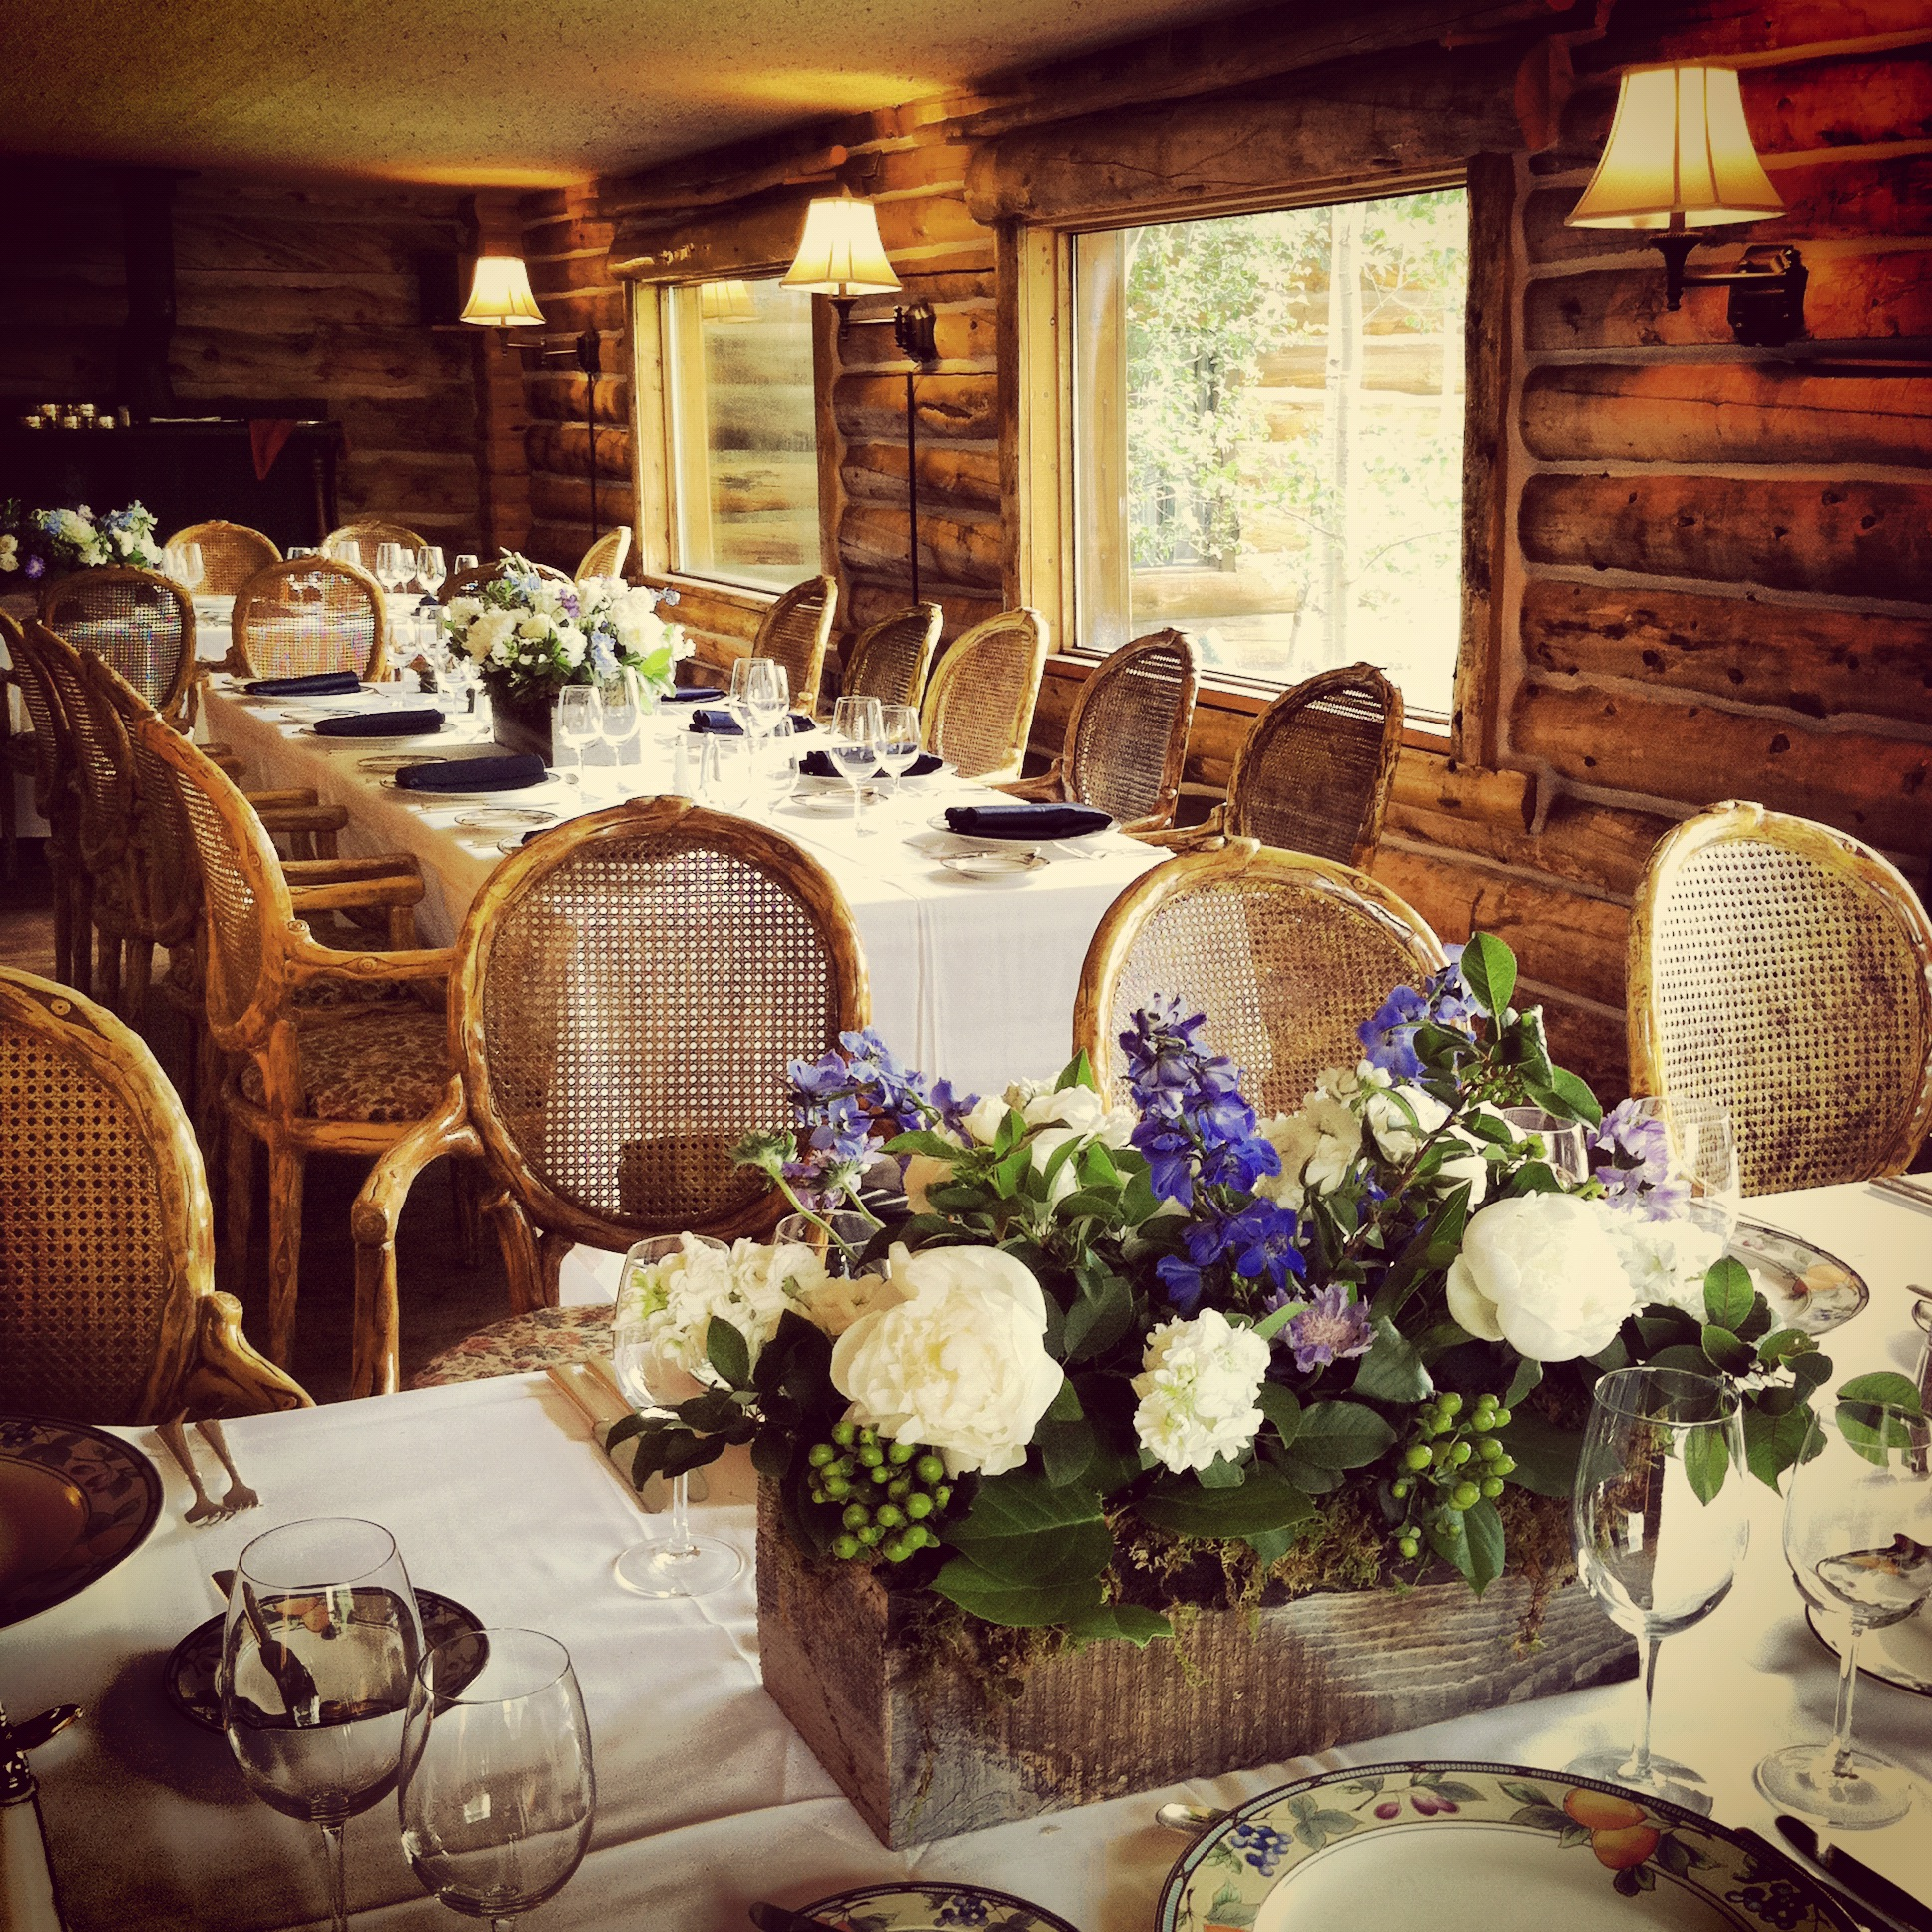 [Venue] the Keystone Ranch Restaurant in Keystone, Colorado.